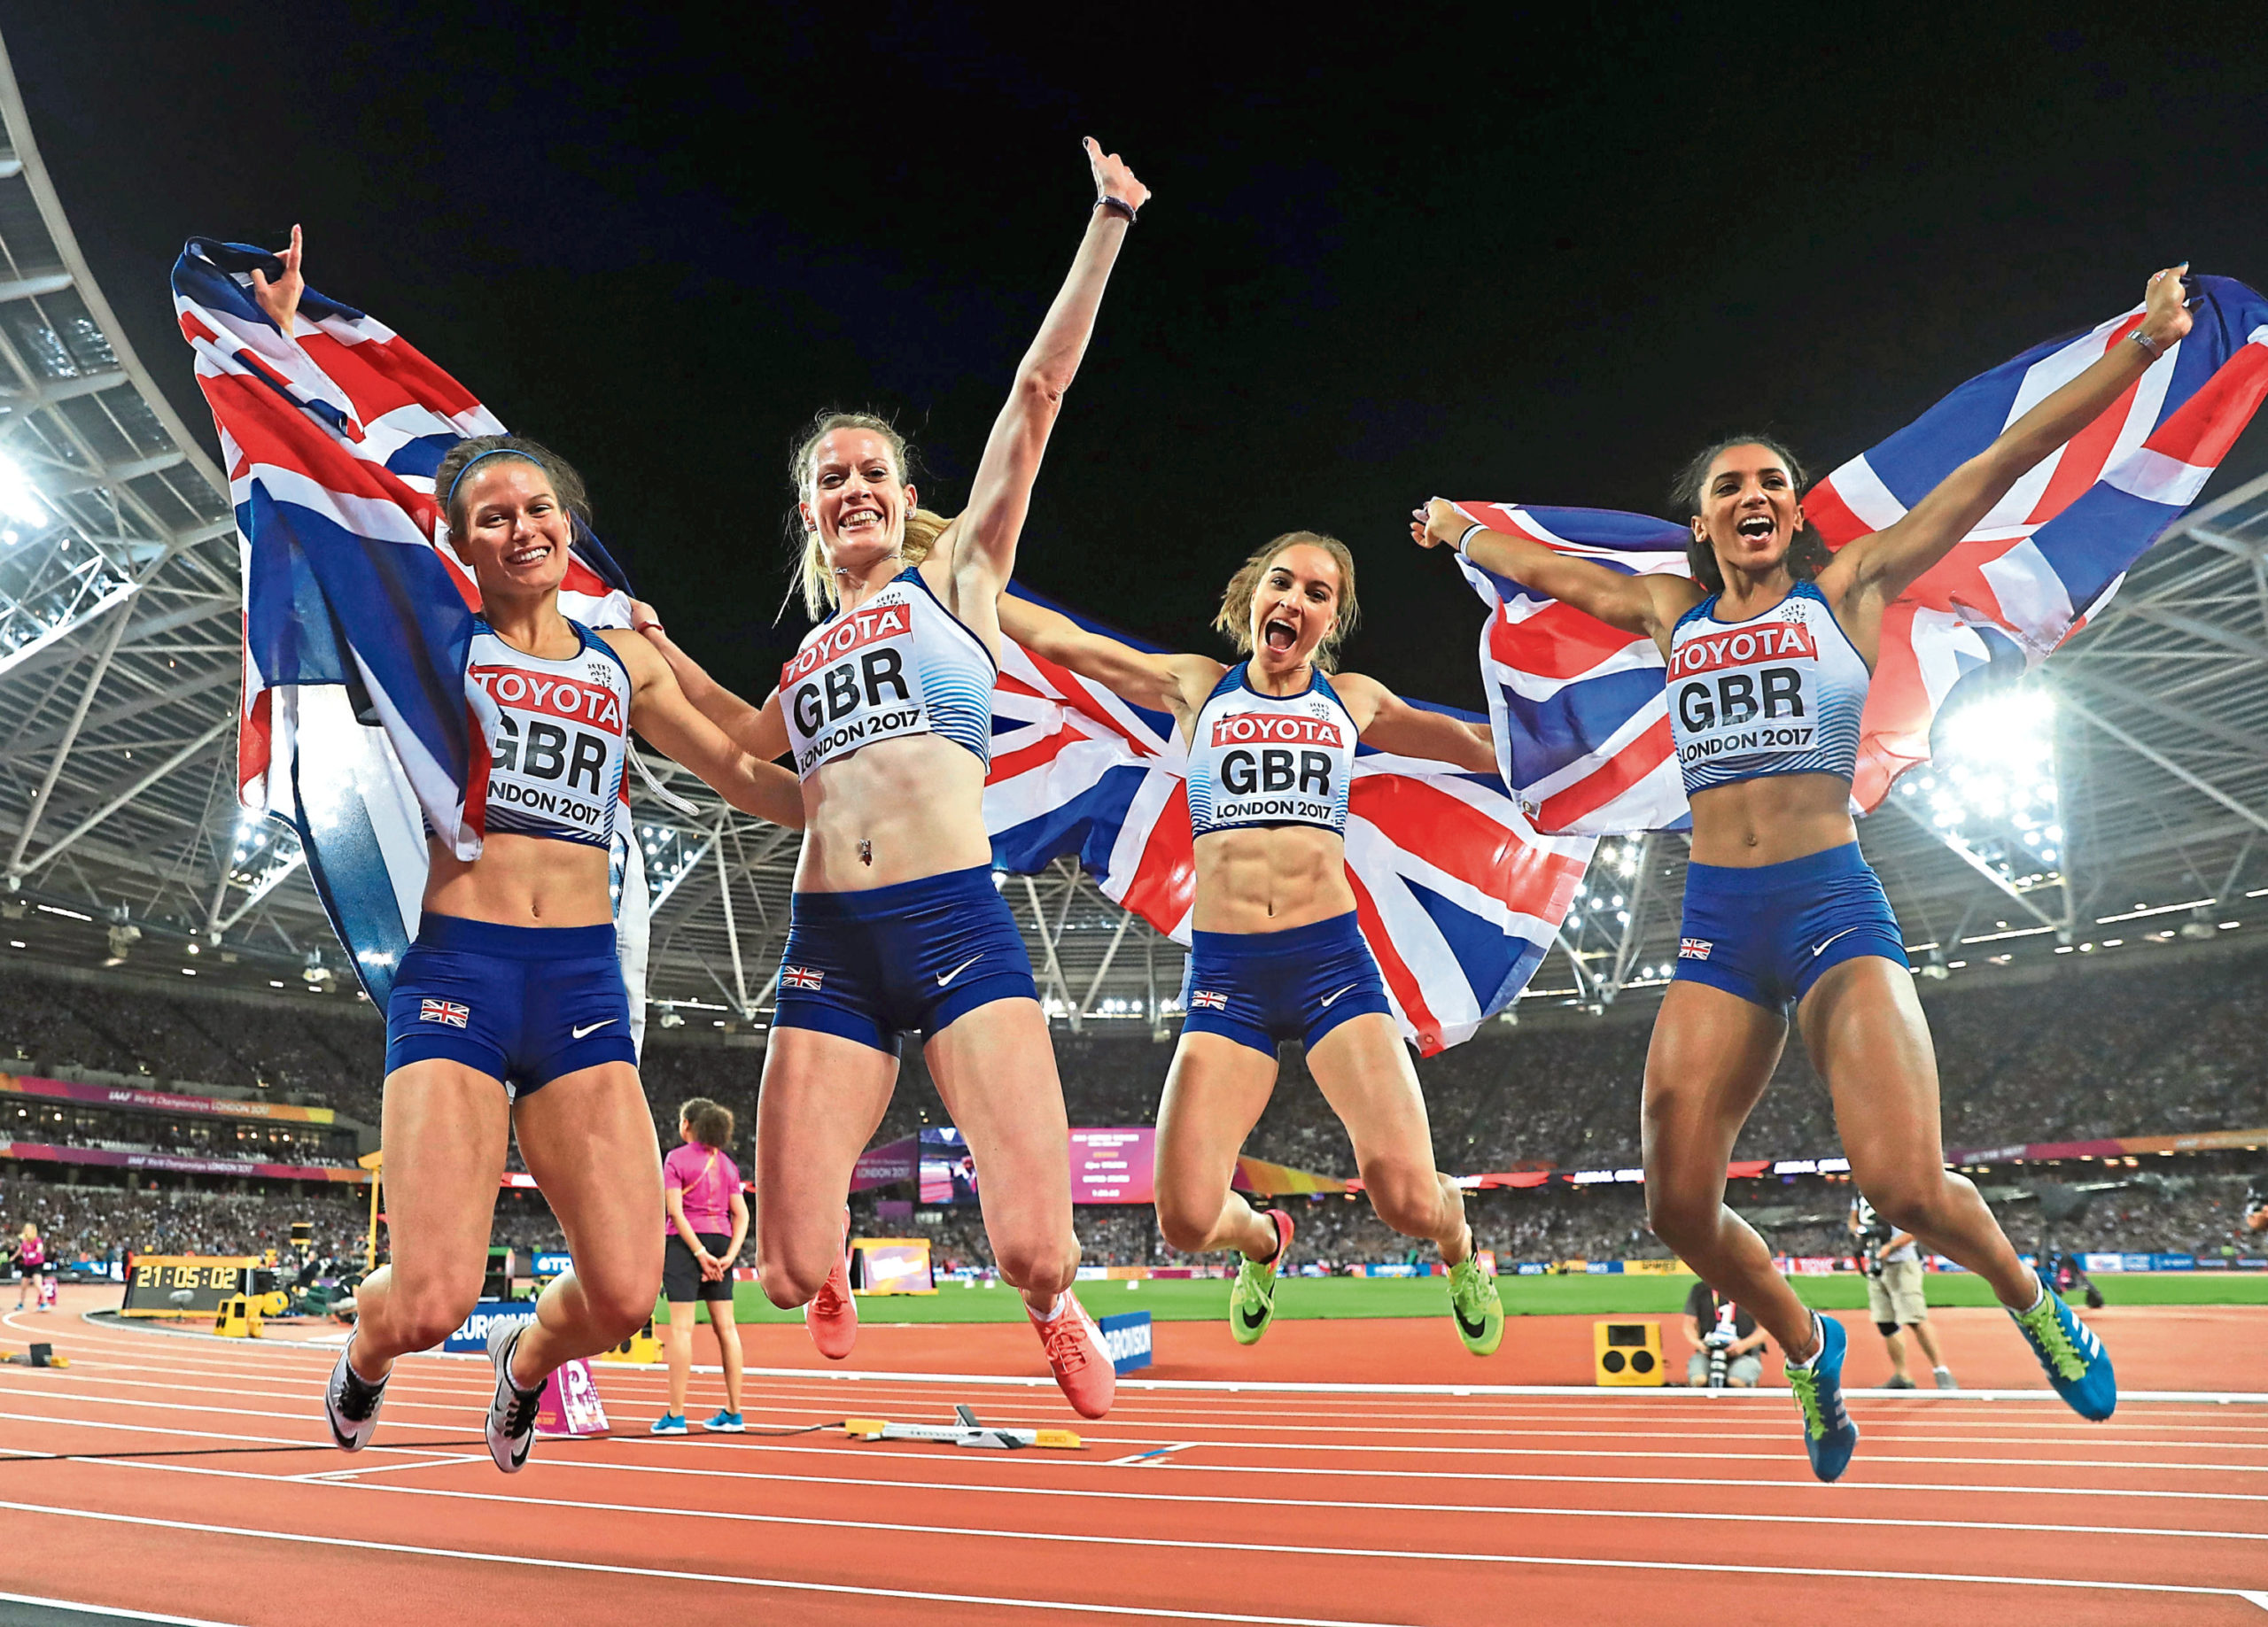 Great Britain's 4 x 400m relay final team (left to right) Zoey Clark, Eilidh Doyle, Emily Diamond and Laviai Nielsen celebrate winning silver during day ten of the 2017 IAAF World Championships at the London Stadium.